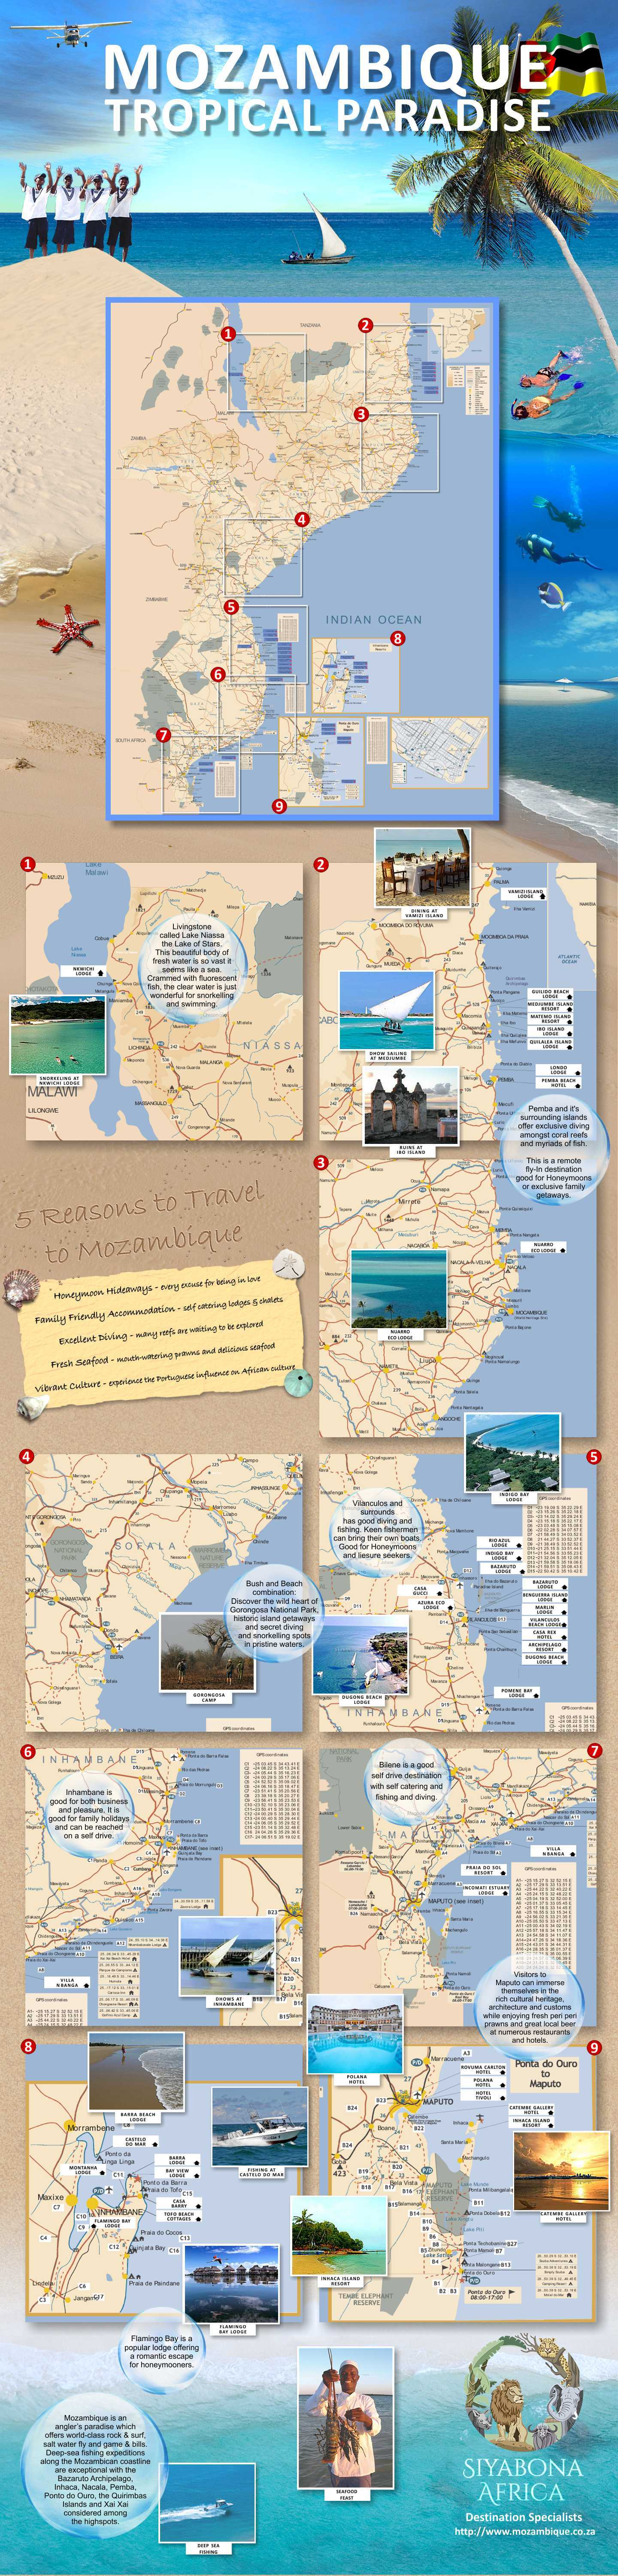 Pemba and matemo holiday package pemba mozambique accommodation - Maputo Mo Ambique Skyscrapercity Mocambique Pinterest Travel And Maputo